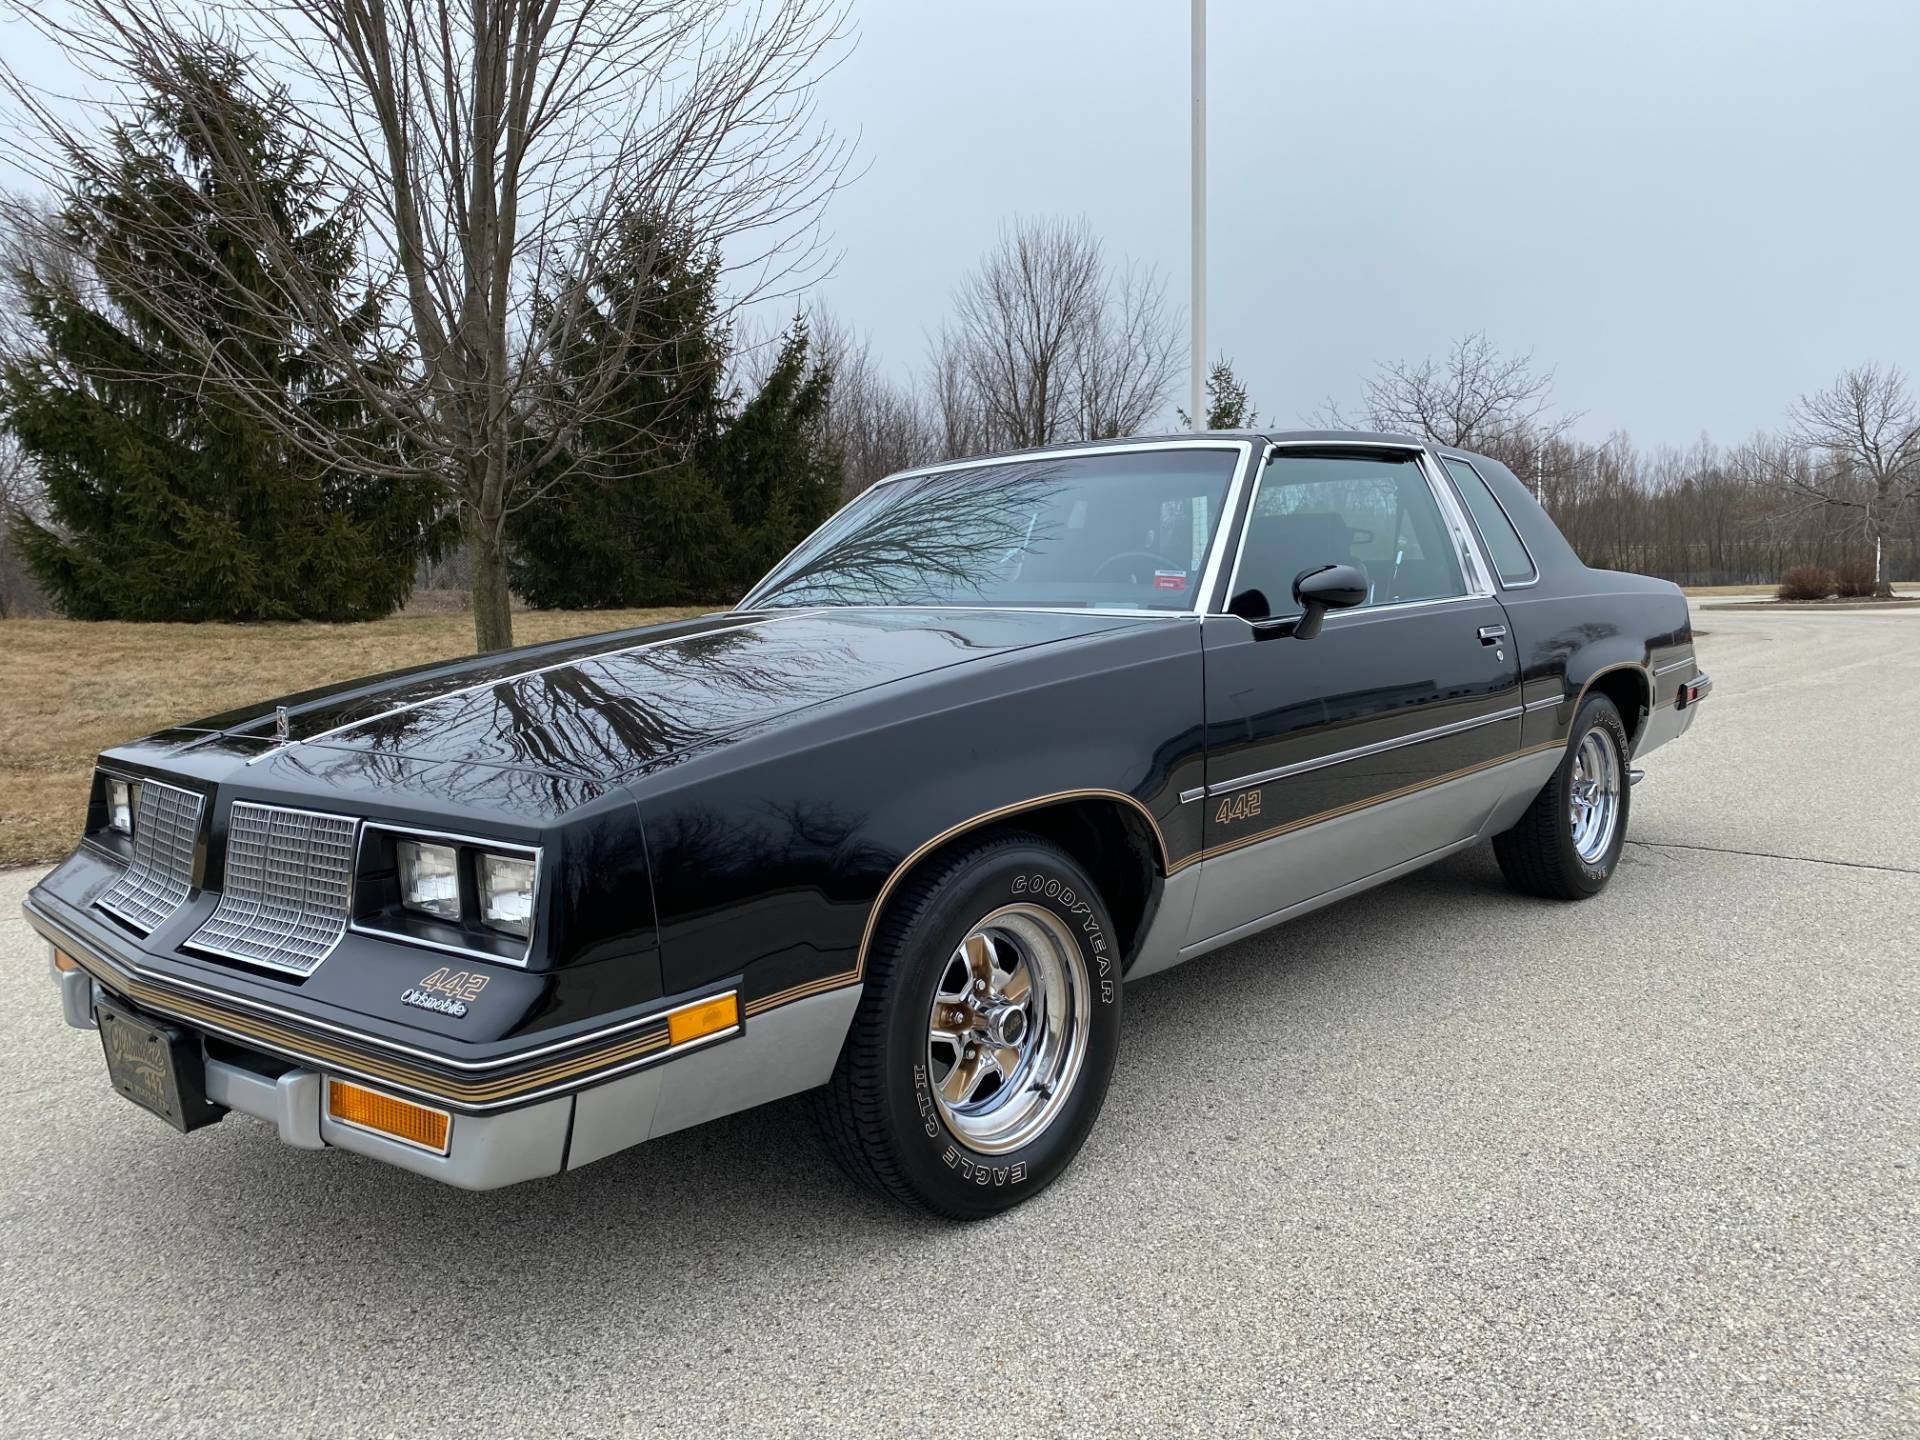 1985 Oldsmobile Cutlass Salon 442 in Big Bend, Wisconsin - Photo 3